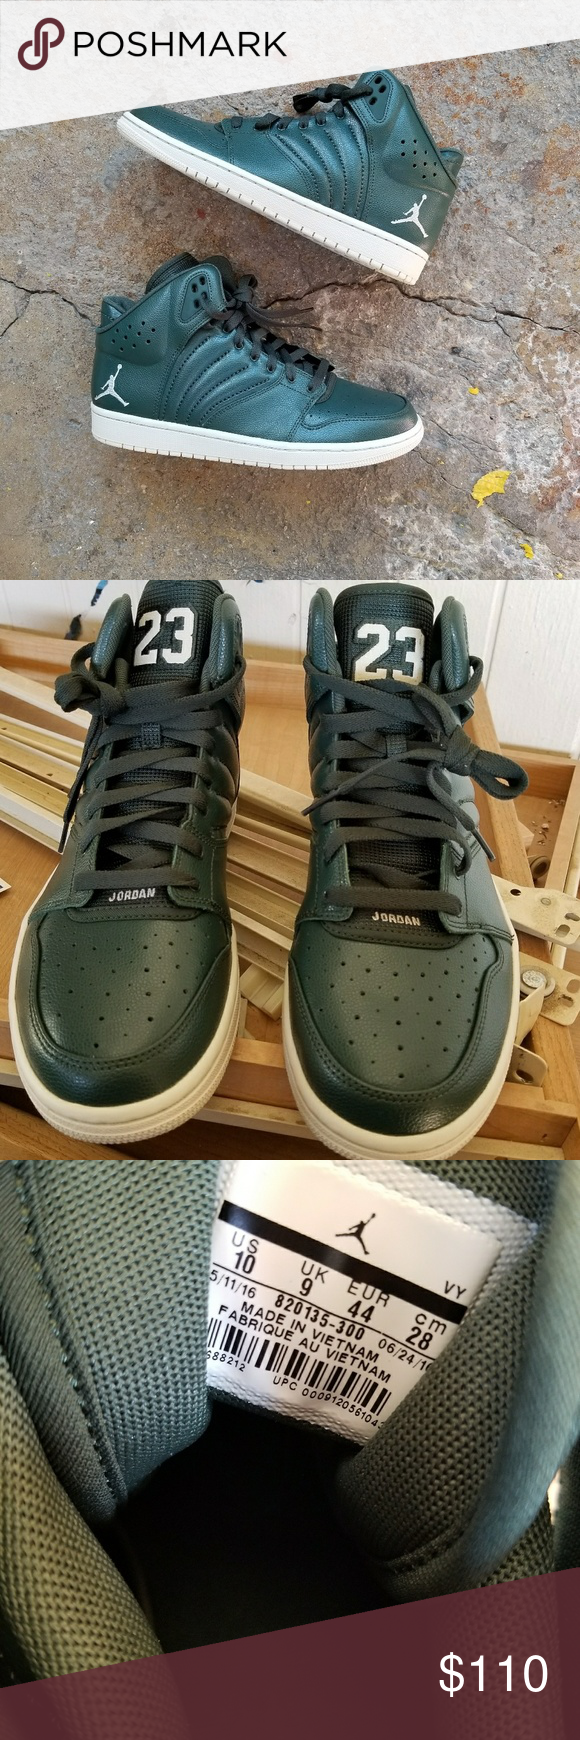 72fd7e358b57ce Nike air Jordan 1 flight 4 sneakers Nike Air Jordan 1 flight 4 sneakers.  Worn once. Some light wear. Flaws shown. Small flaw on the 23 shown in pic  2 on the ...